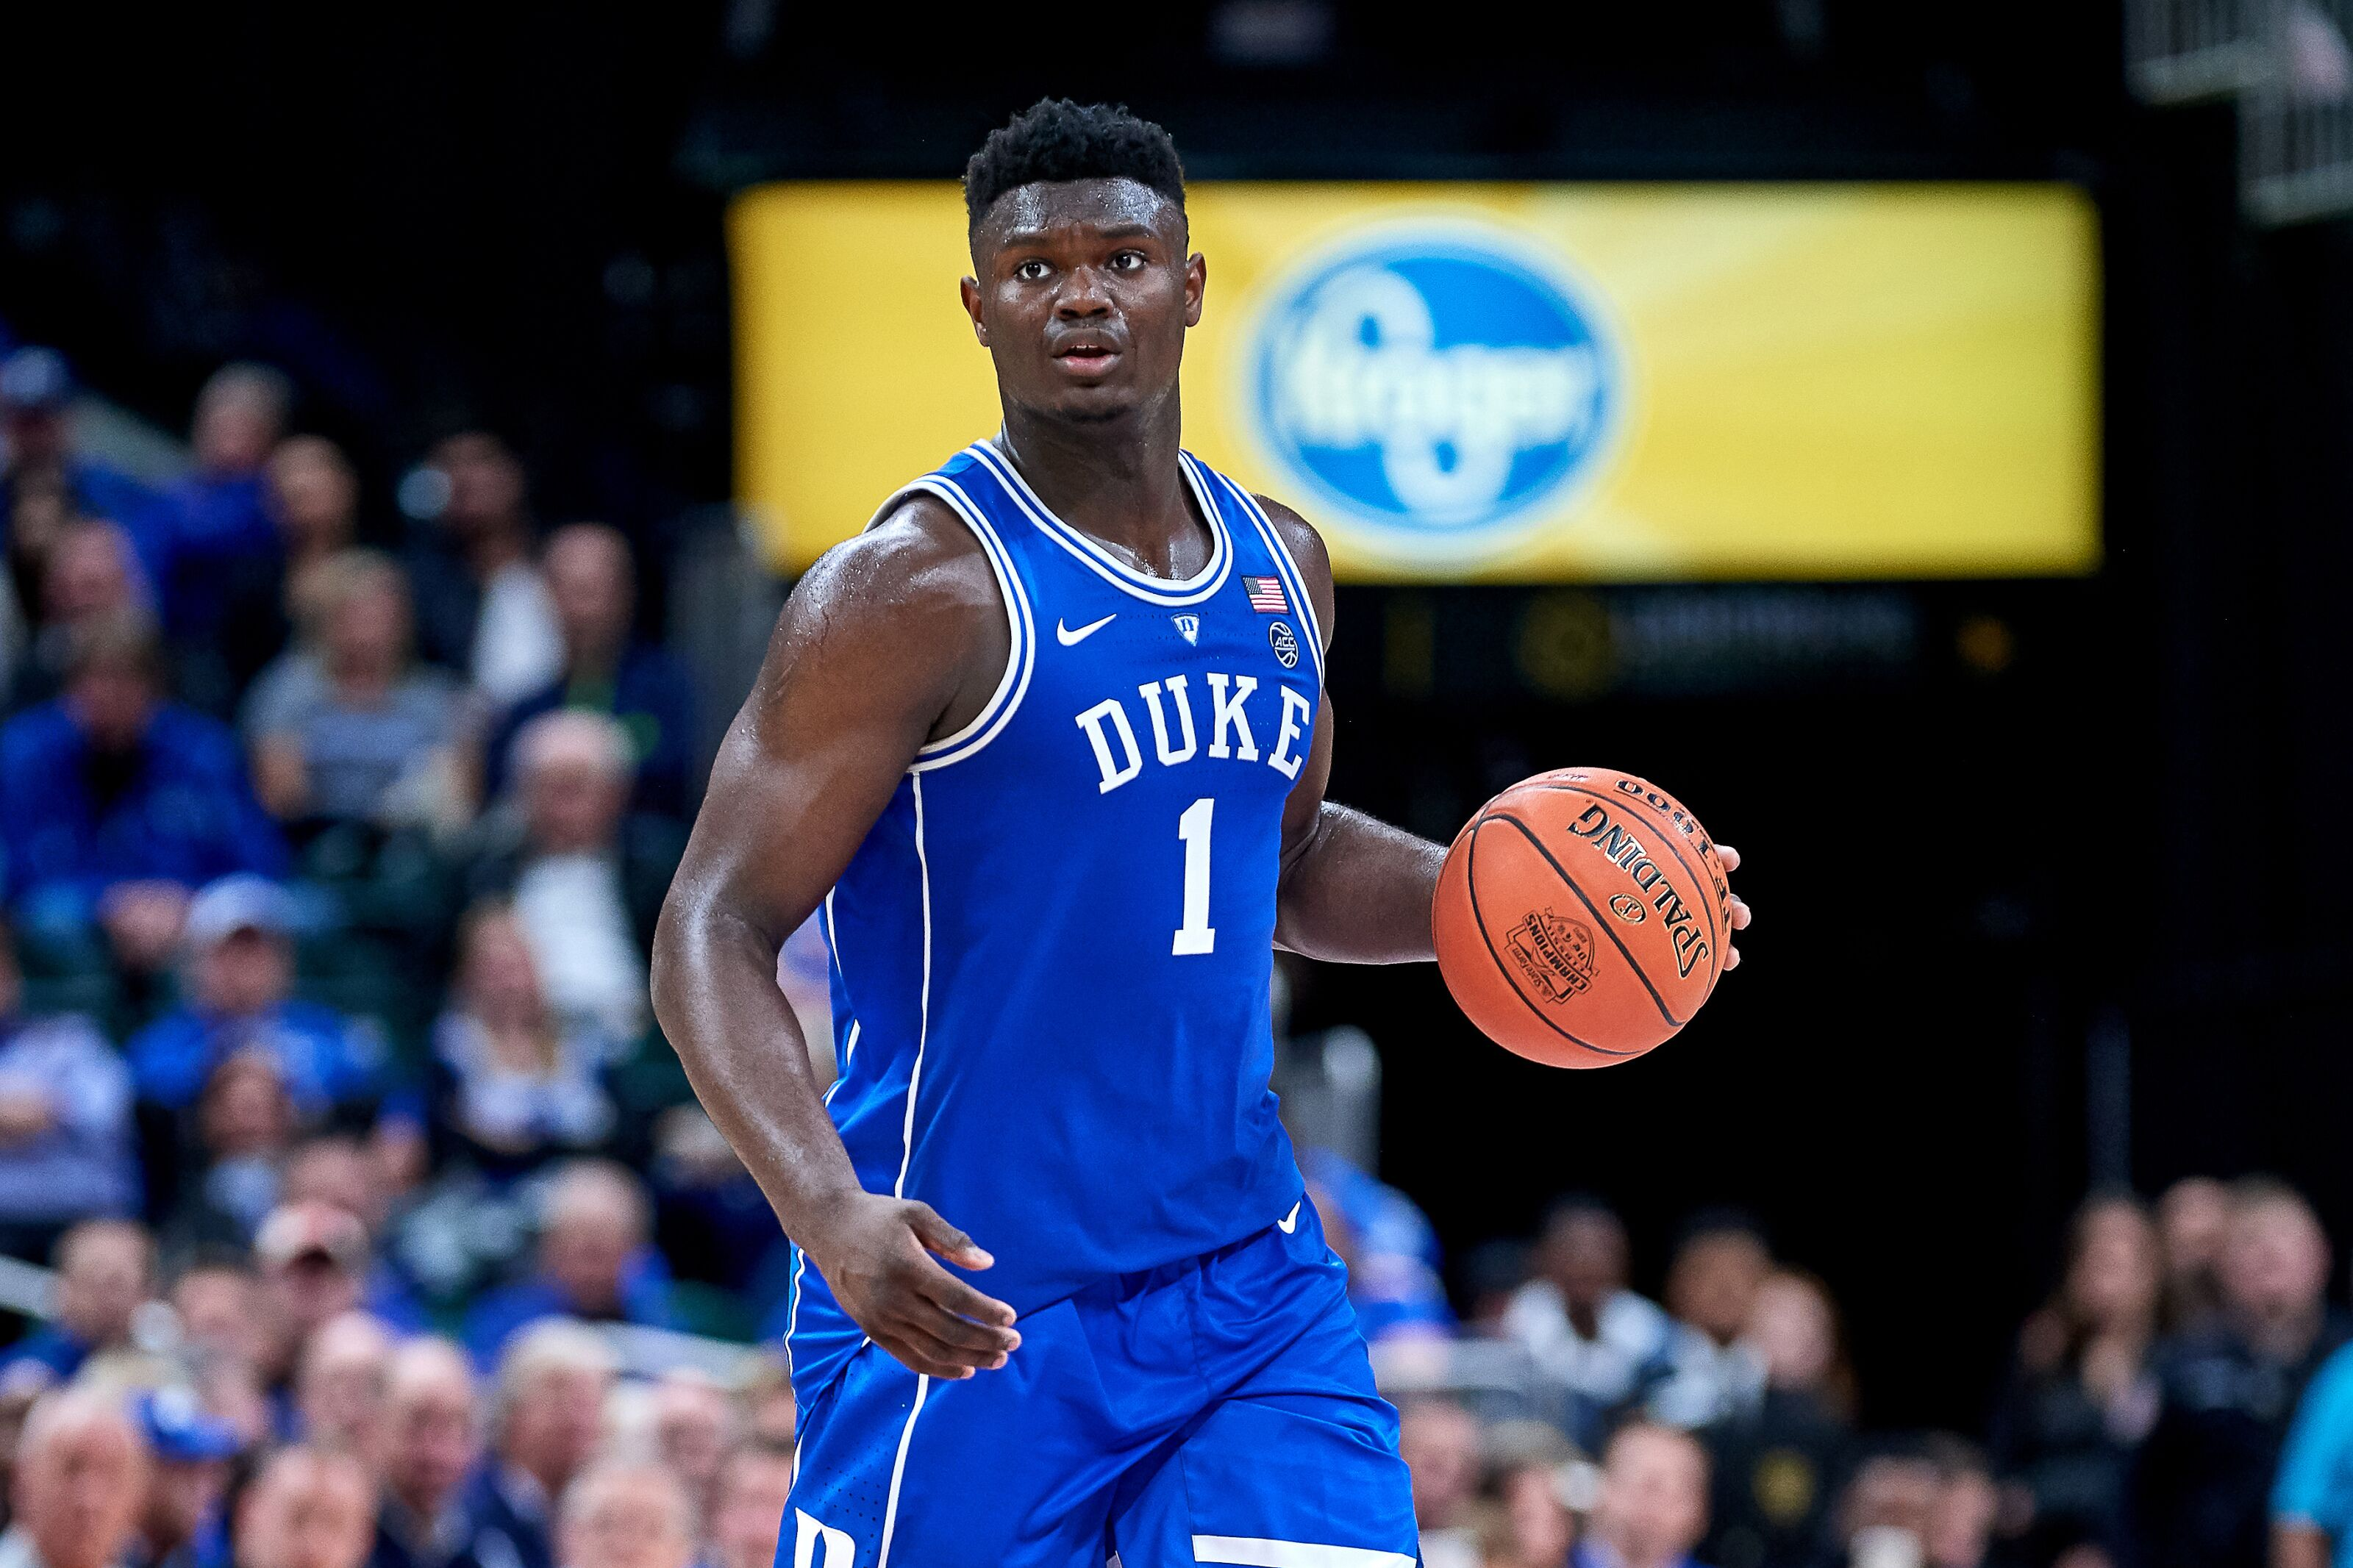 New York Knicks: Hypothetically 'rigging' the draft for Zion Williamson